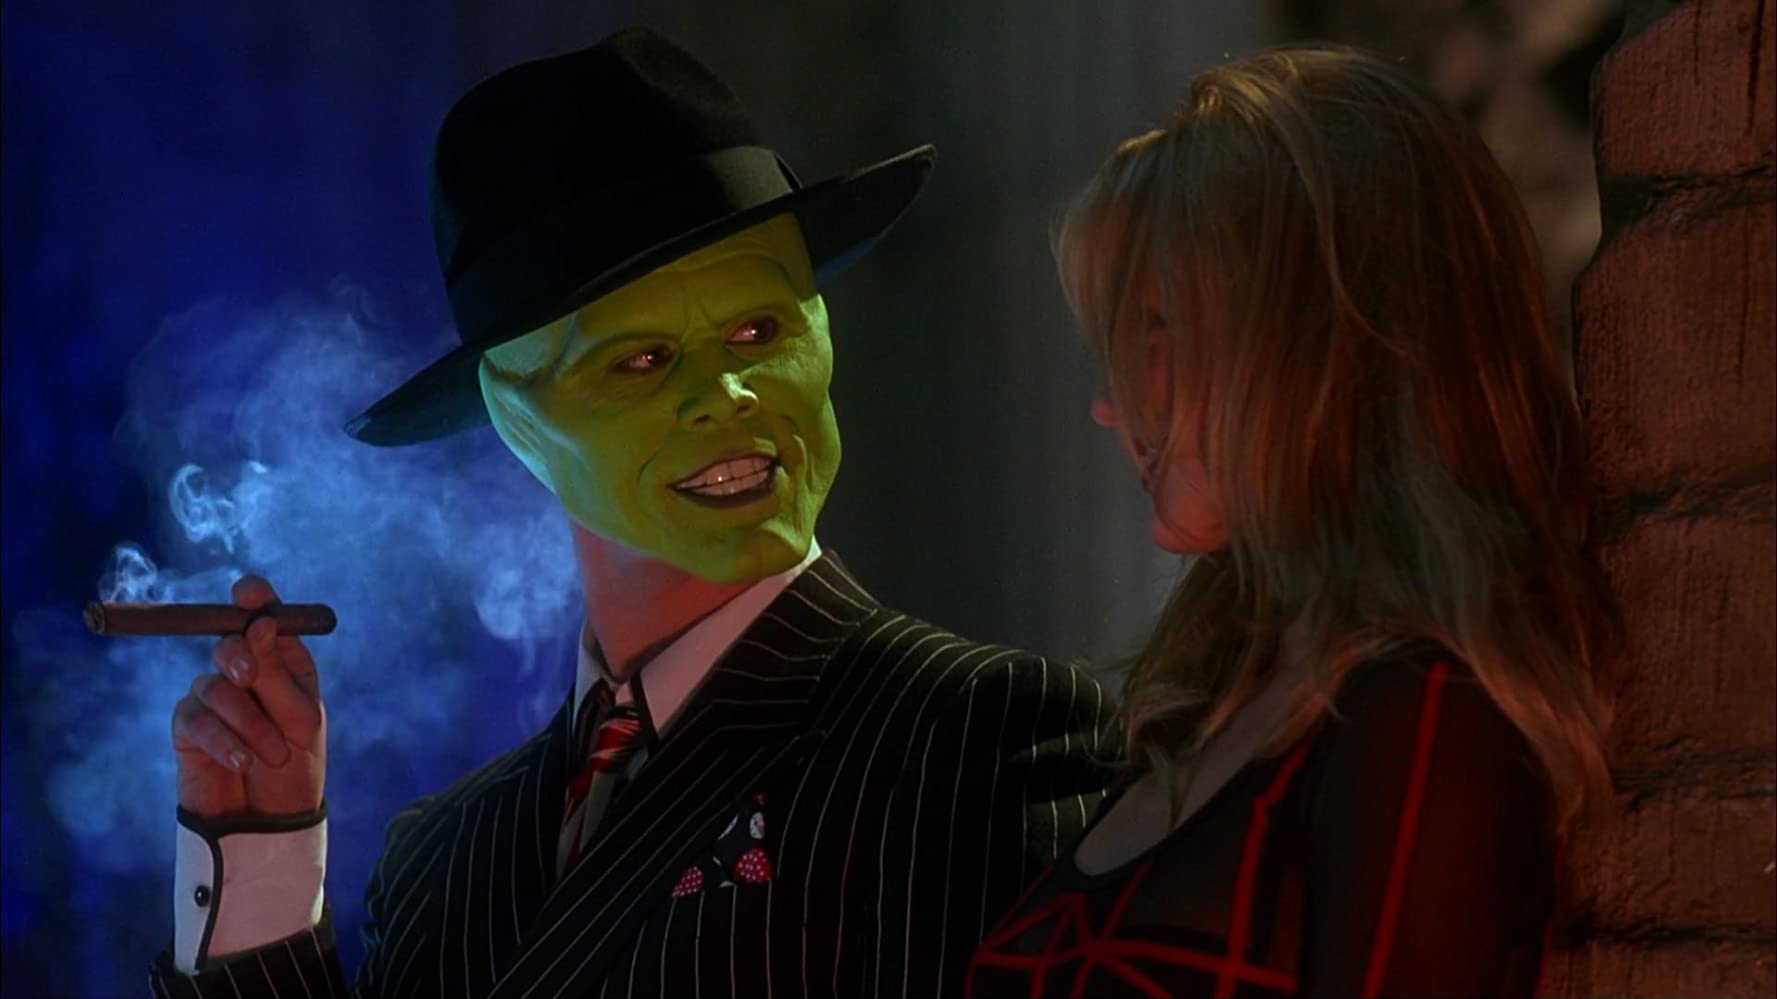 Jim Carrey and Cameron Diaz in The Mask (1994)